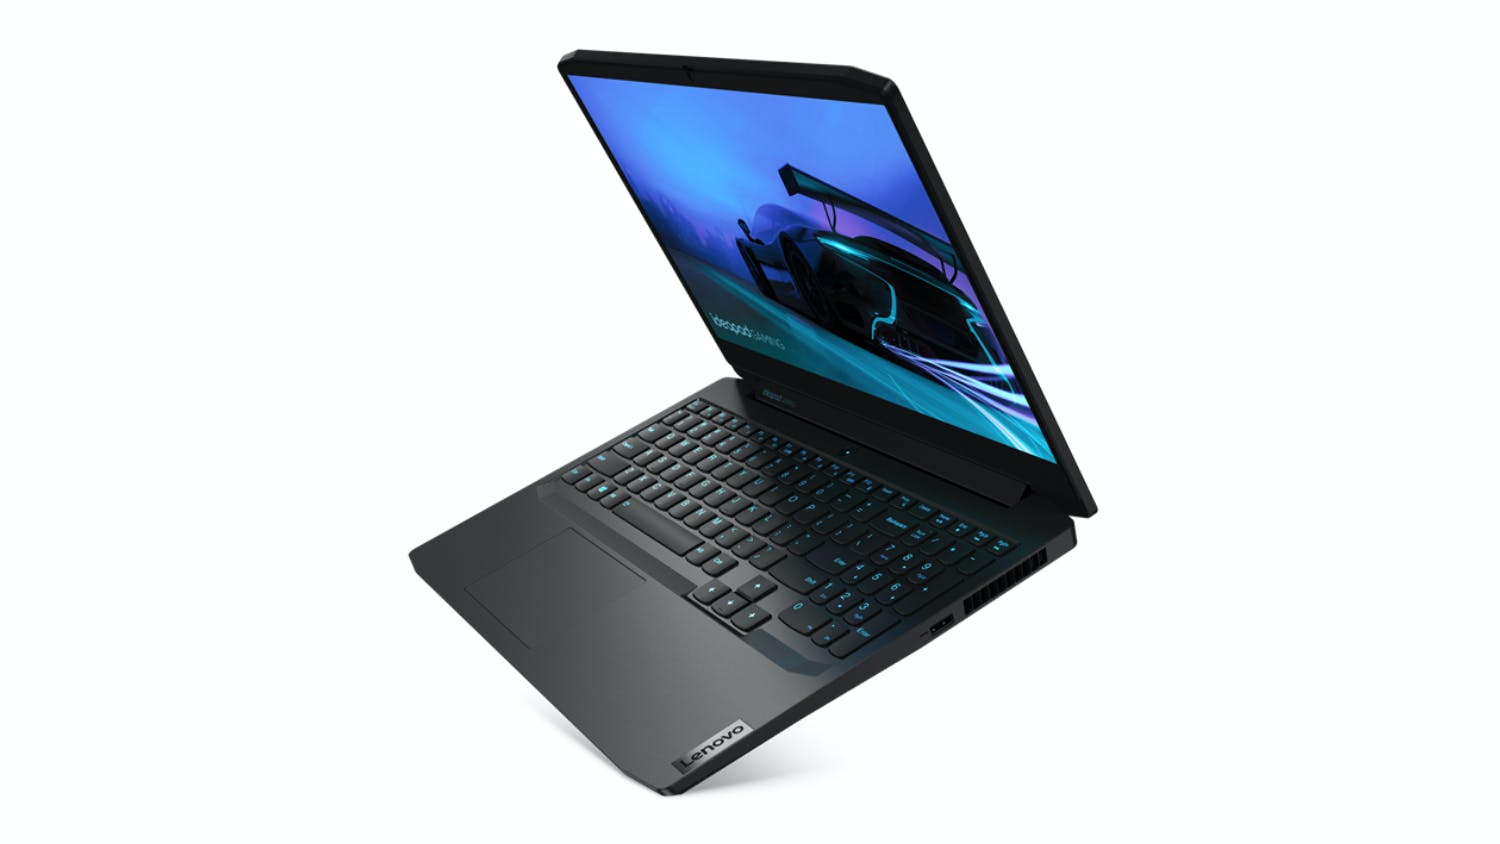 "Lenovo IdeaPad Gaming 3 i7 512GLenovo IdeaPad Gaming 3 i7 512GB 15.6"" Laptop - Black"